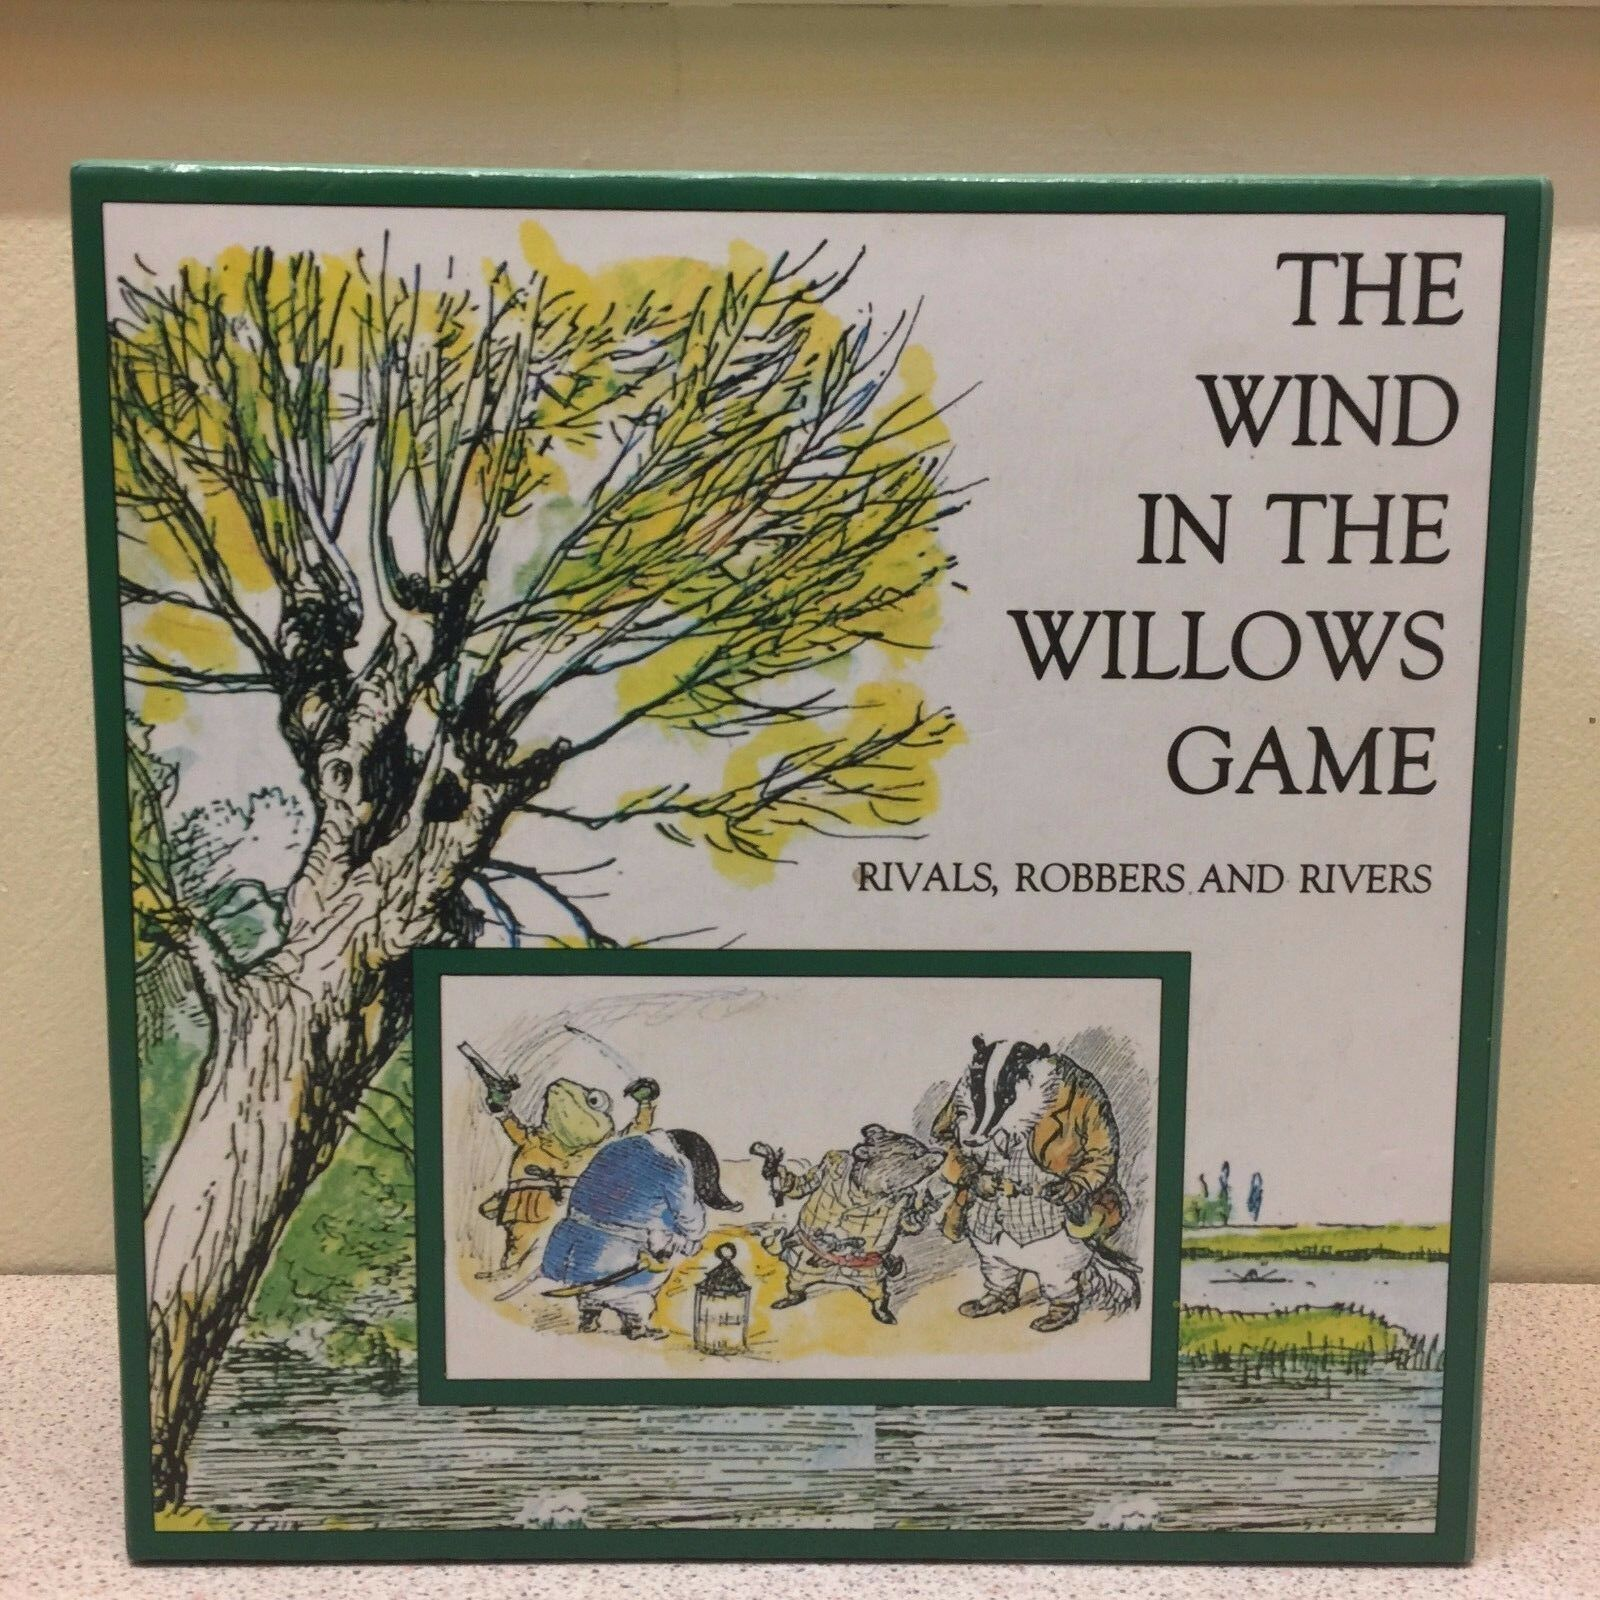 The Wind In The Willows Game Rivals, Robbers and Rivers - Board Game